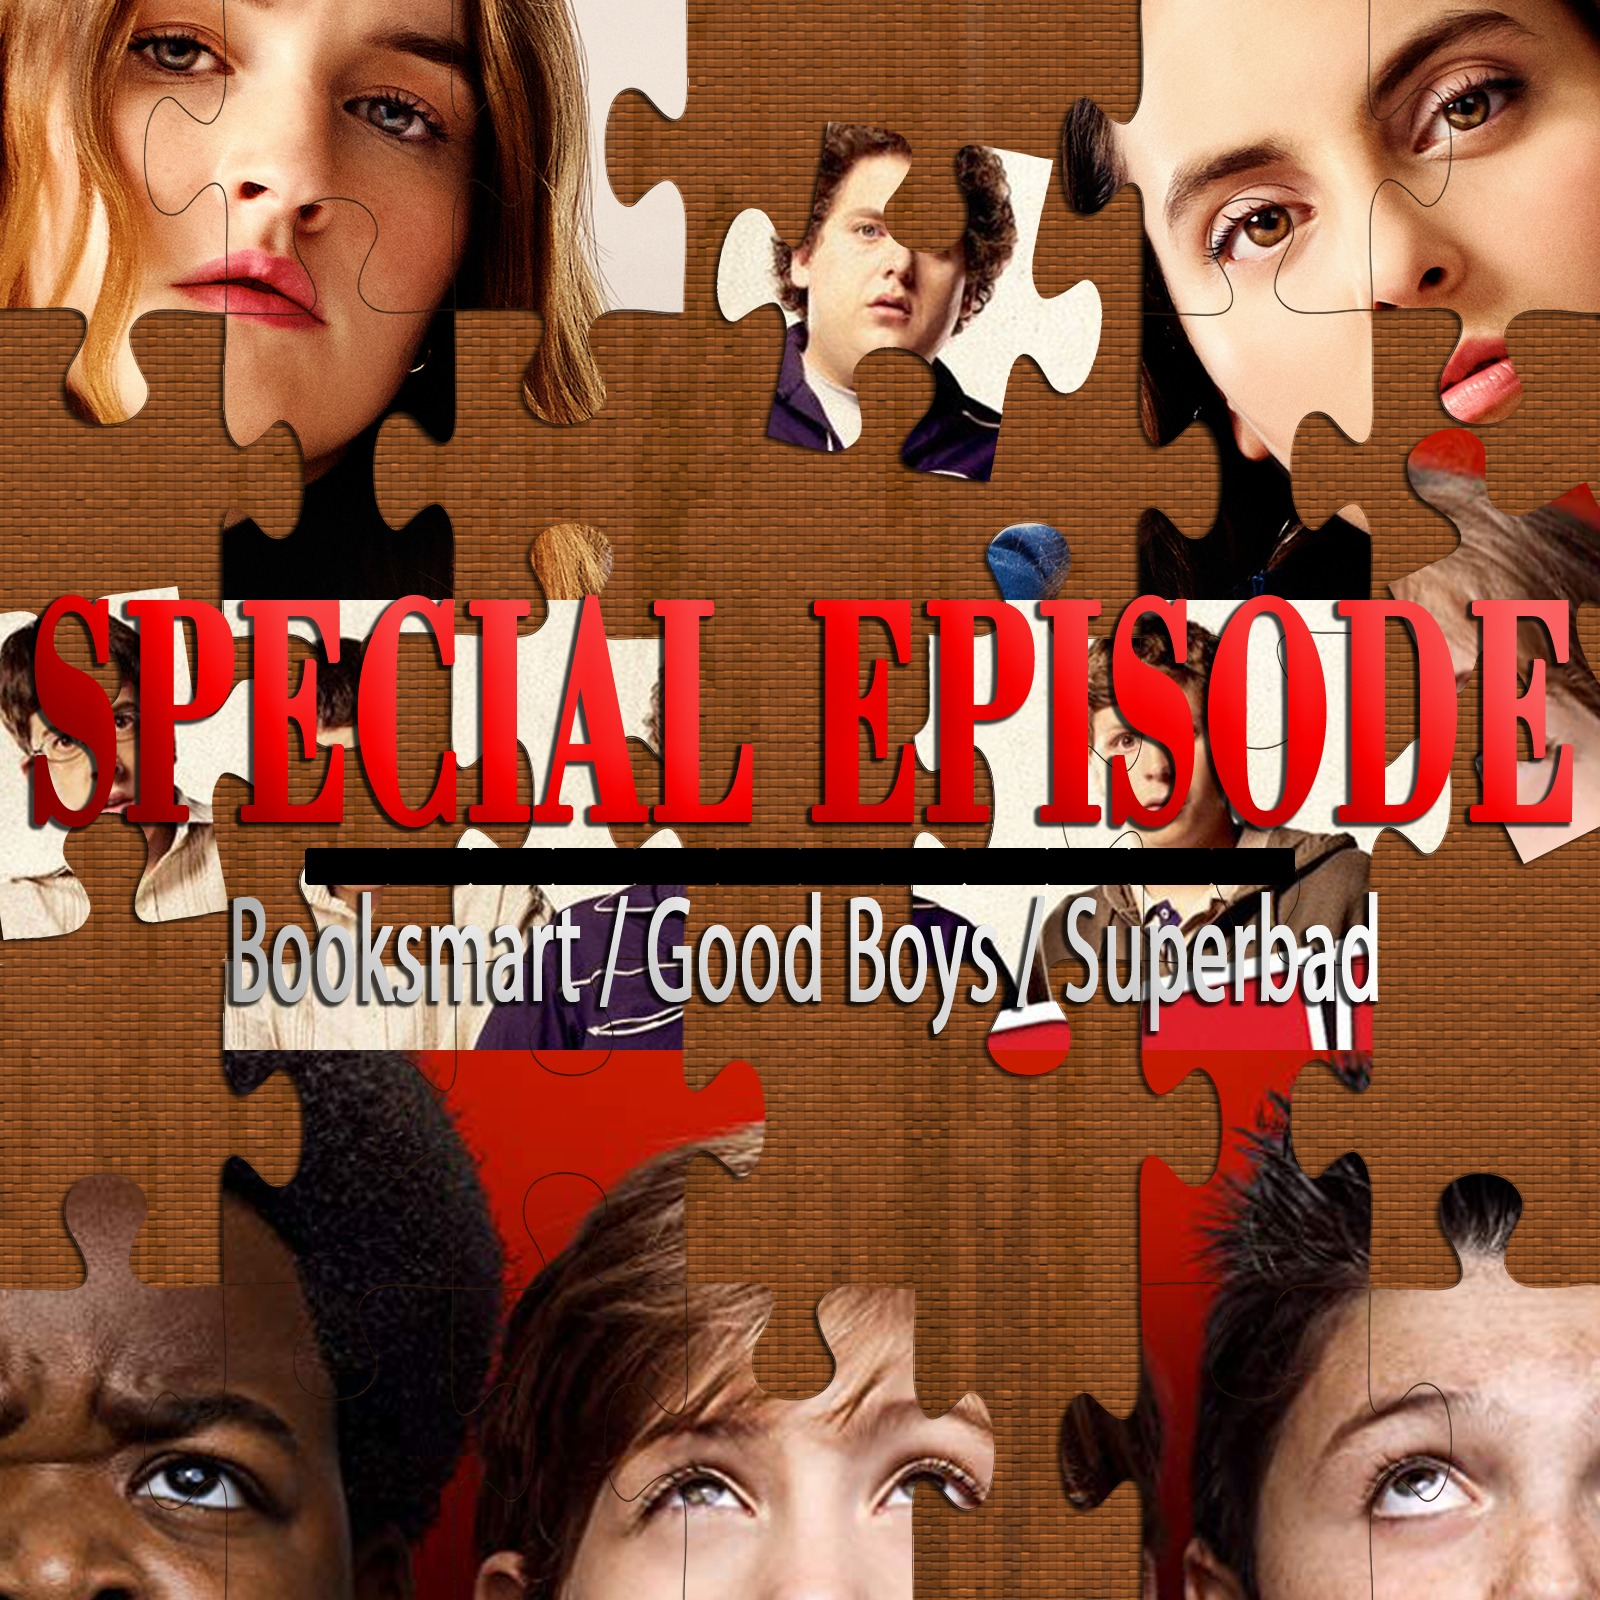 Booksmart / Good Boys / Superbad (Special Episode)